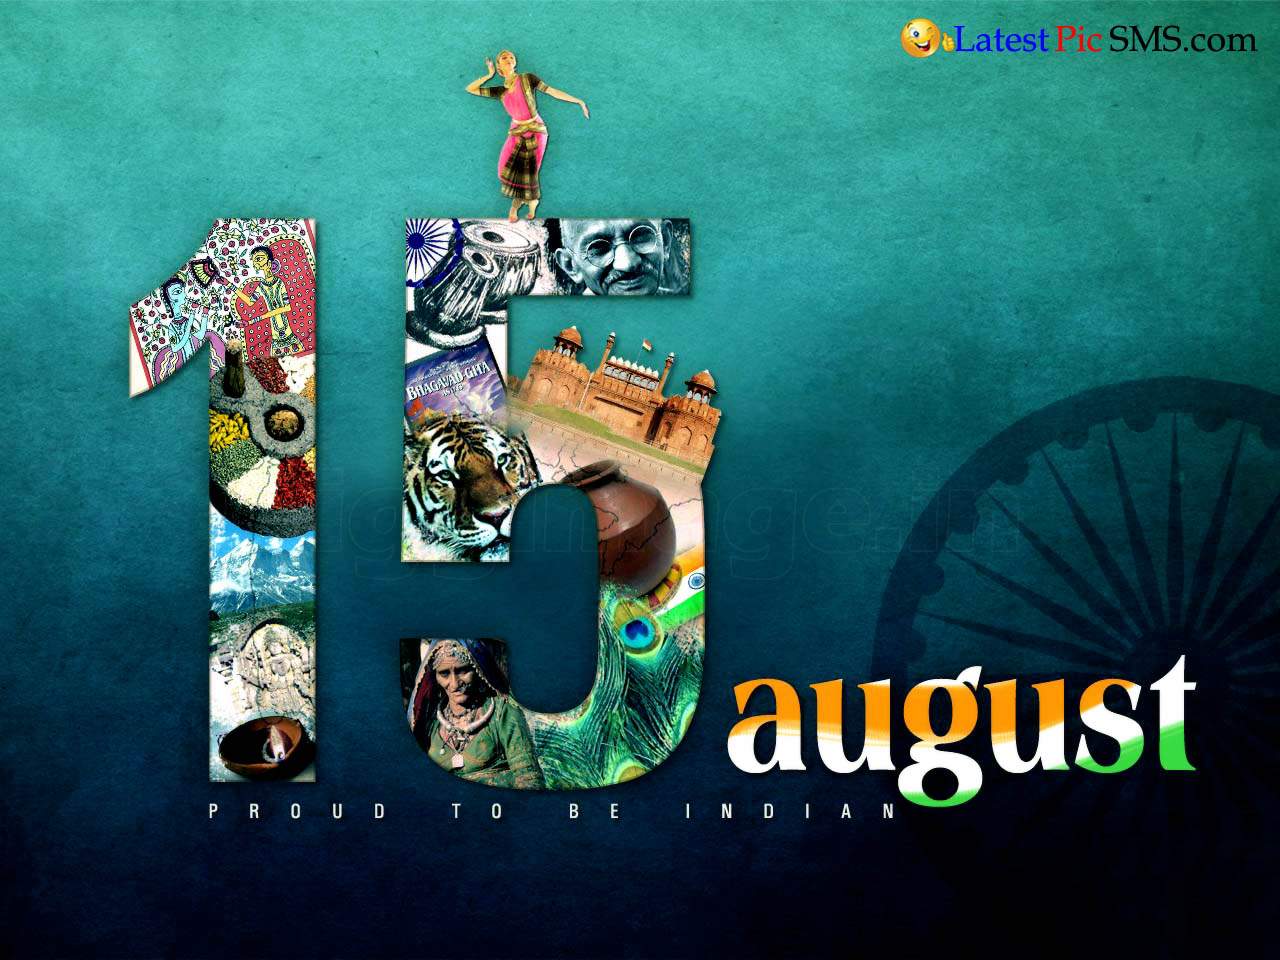 Latest Independence Day facebook Wallpaper - 15 August Indian Independence Day Full HD Images Wallpapers for fb